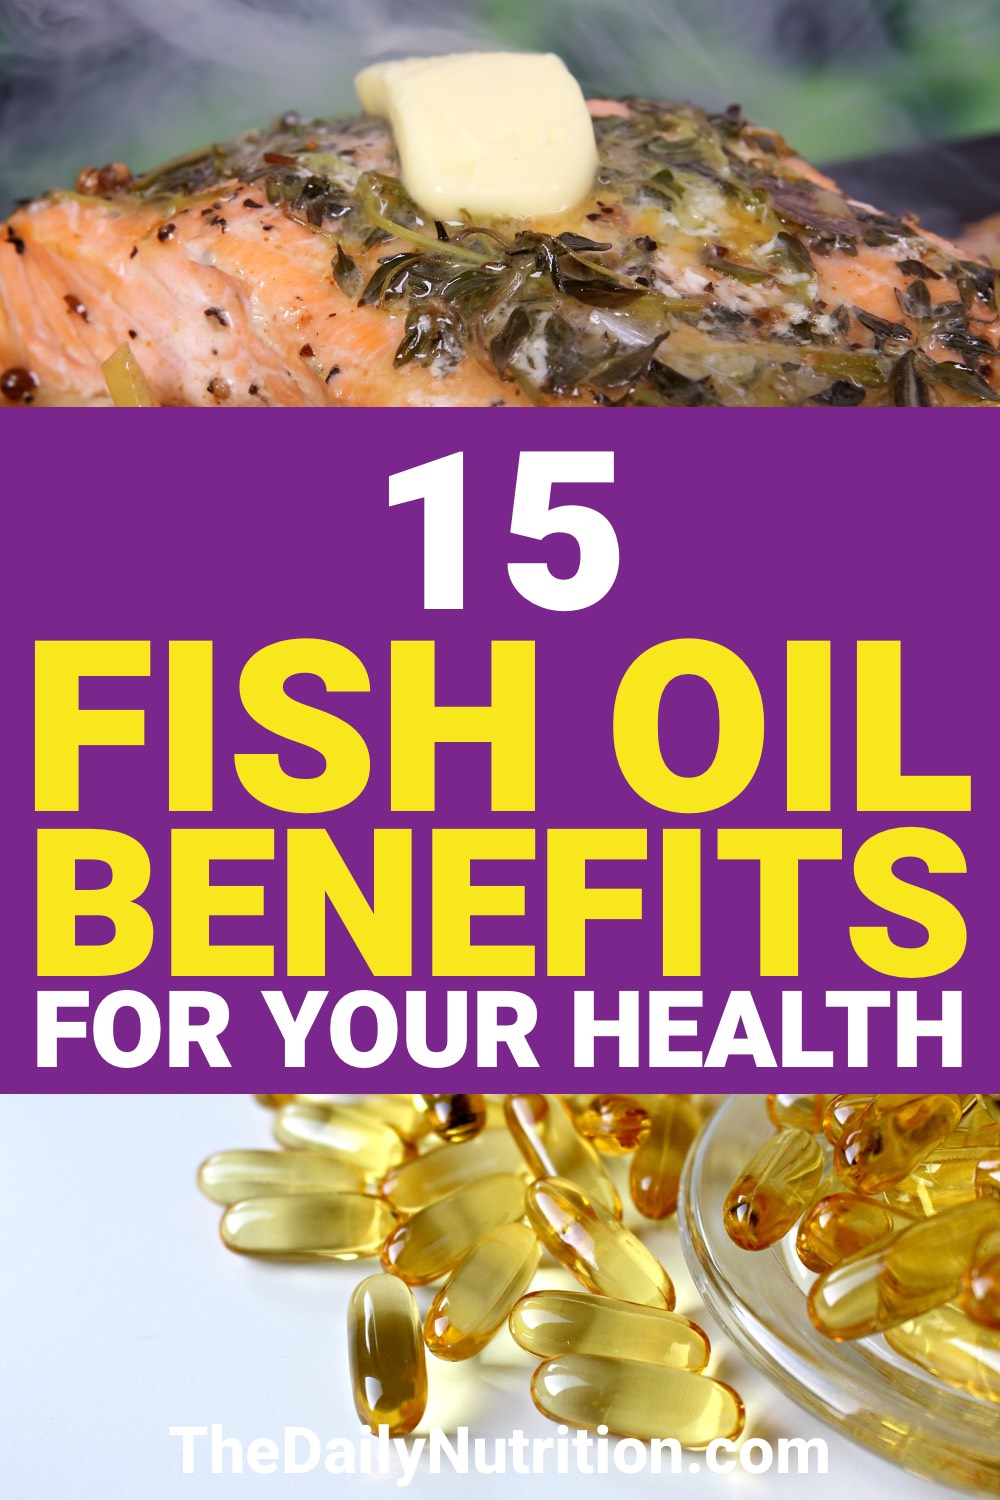 What does fish oil do? Here are 15 fish oil benefits that answer this question.